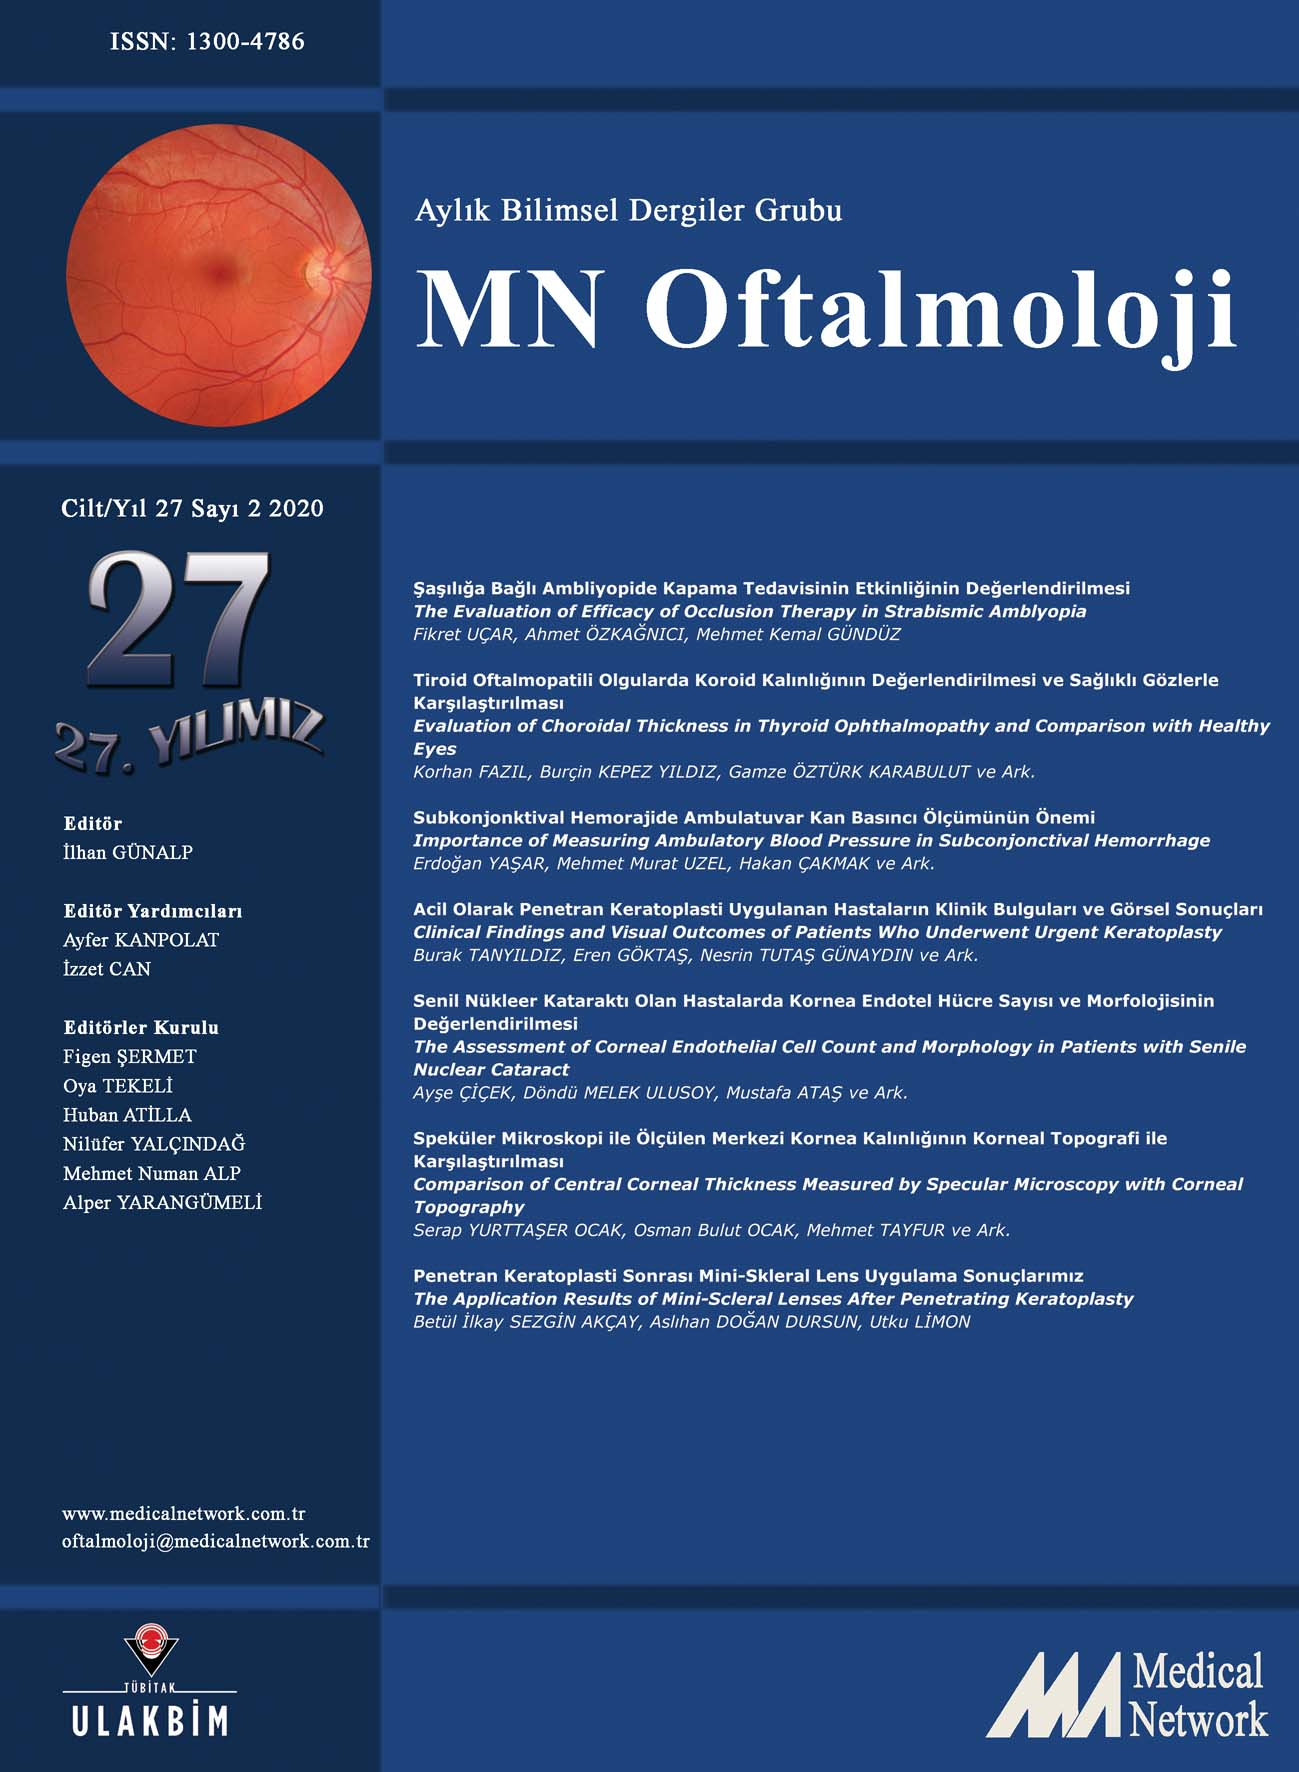 <p>MN Oftalmoloji Cilt: 27 Sayı: 2 2020 (MN Ophthalmology Volume: 27 No 2 2020)</p>